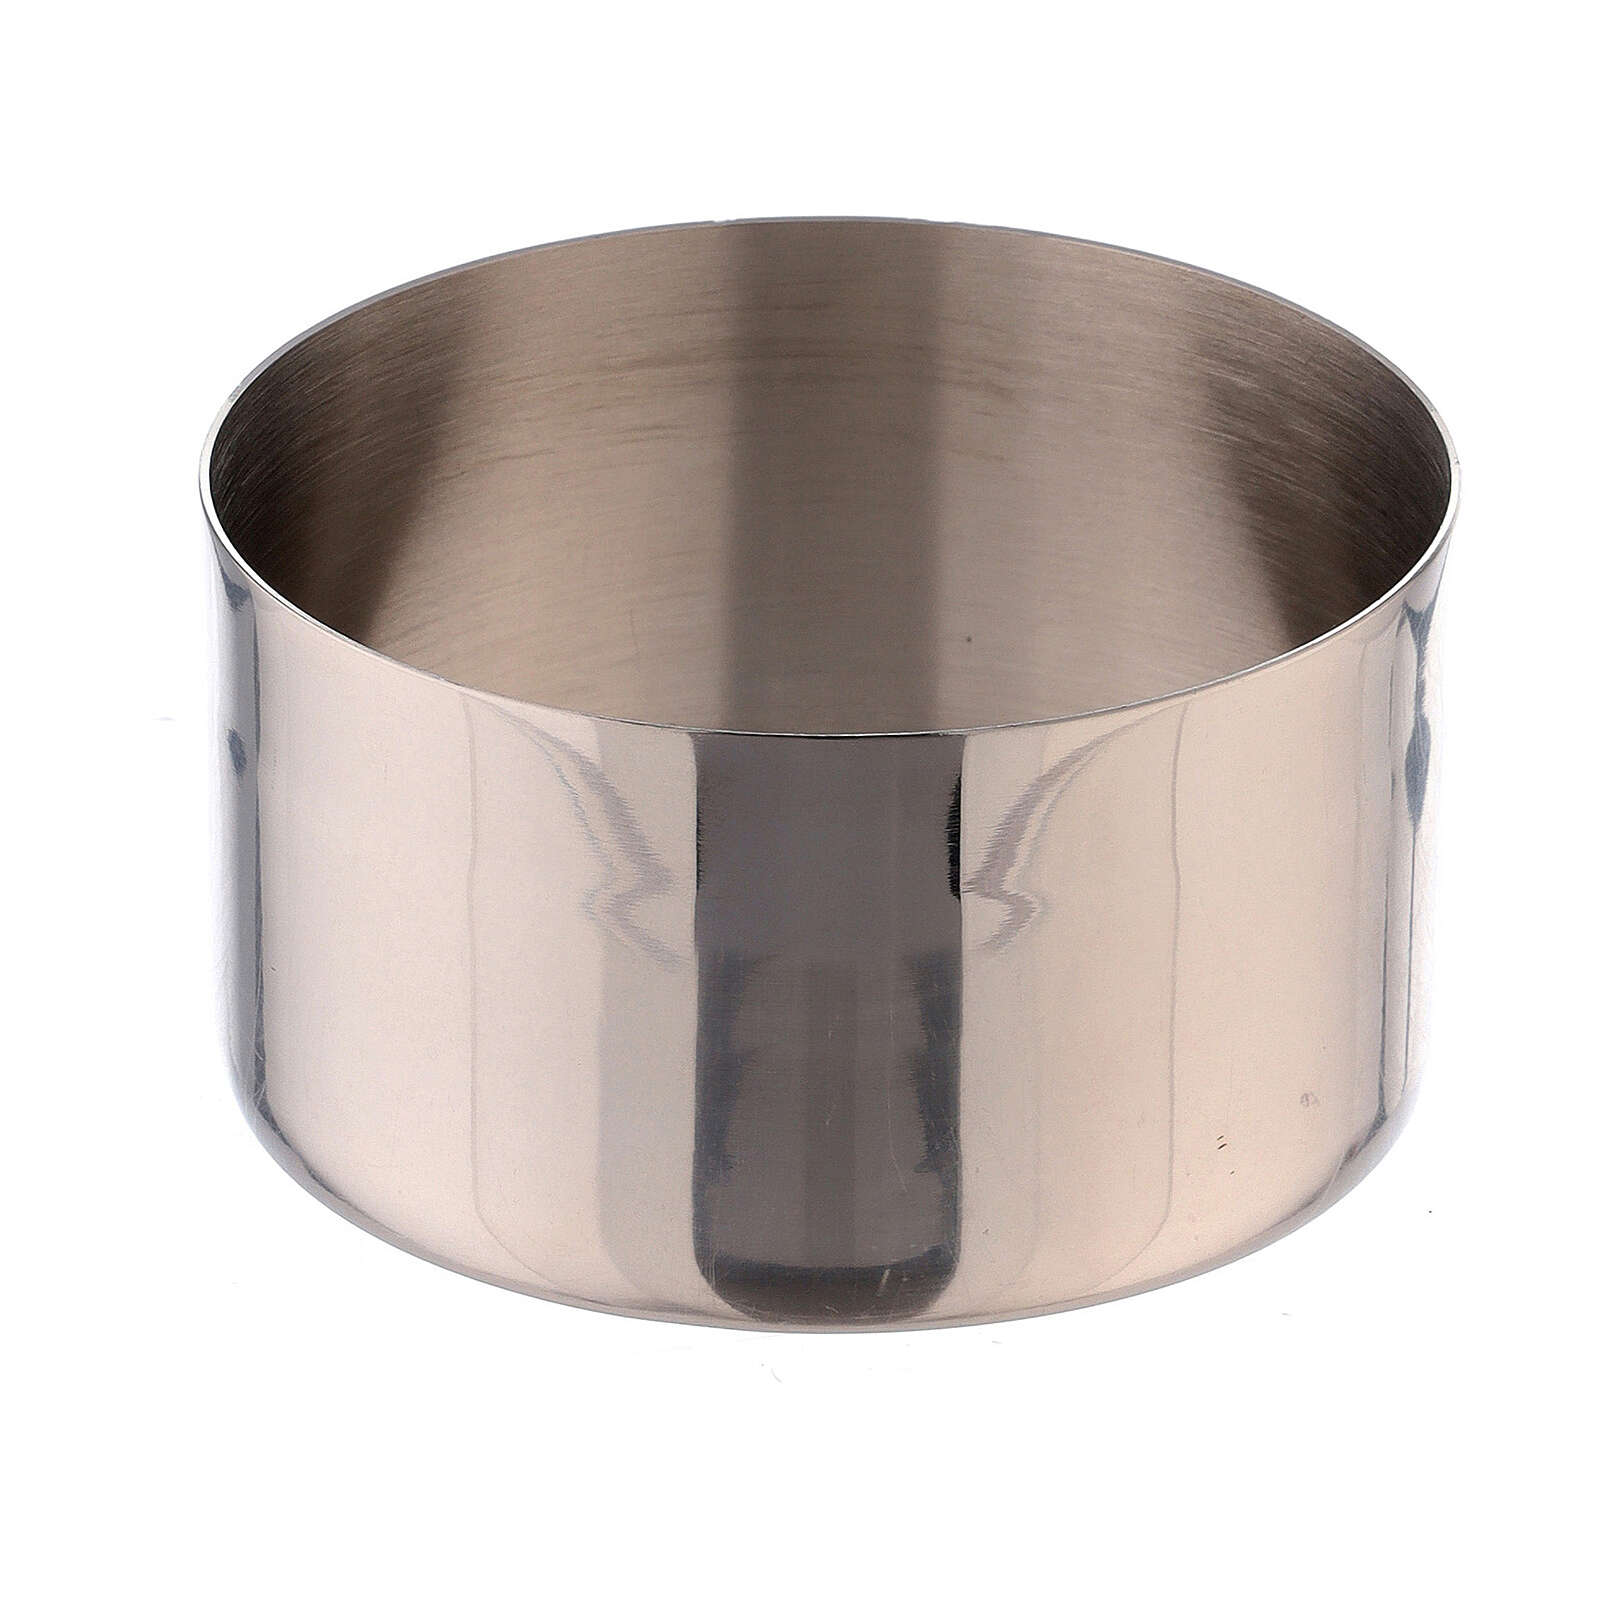 Nickel-plated brass candle accessory 1 1/2 in ring 4